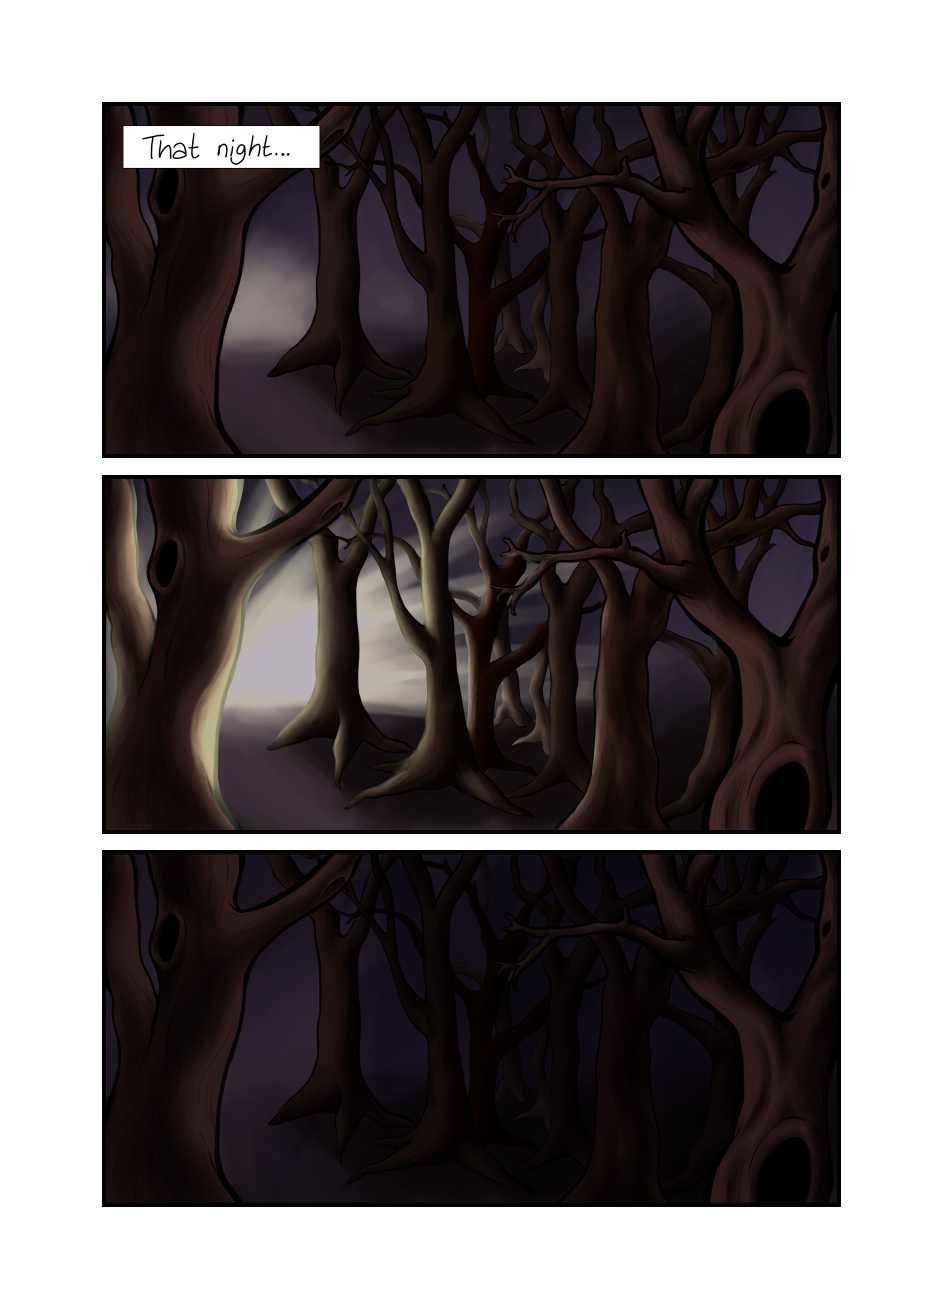 Blood and Flowers - page 20